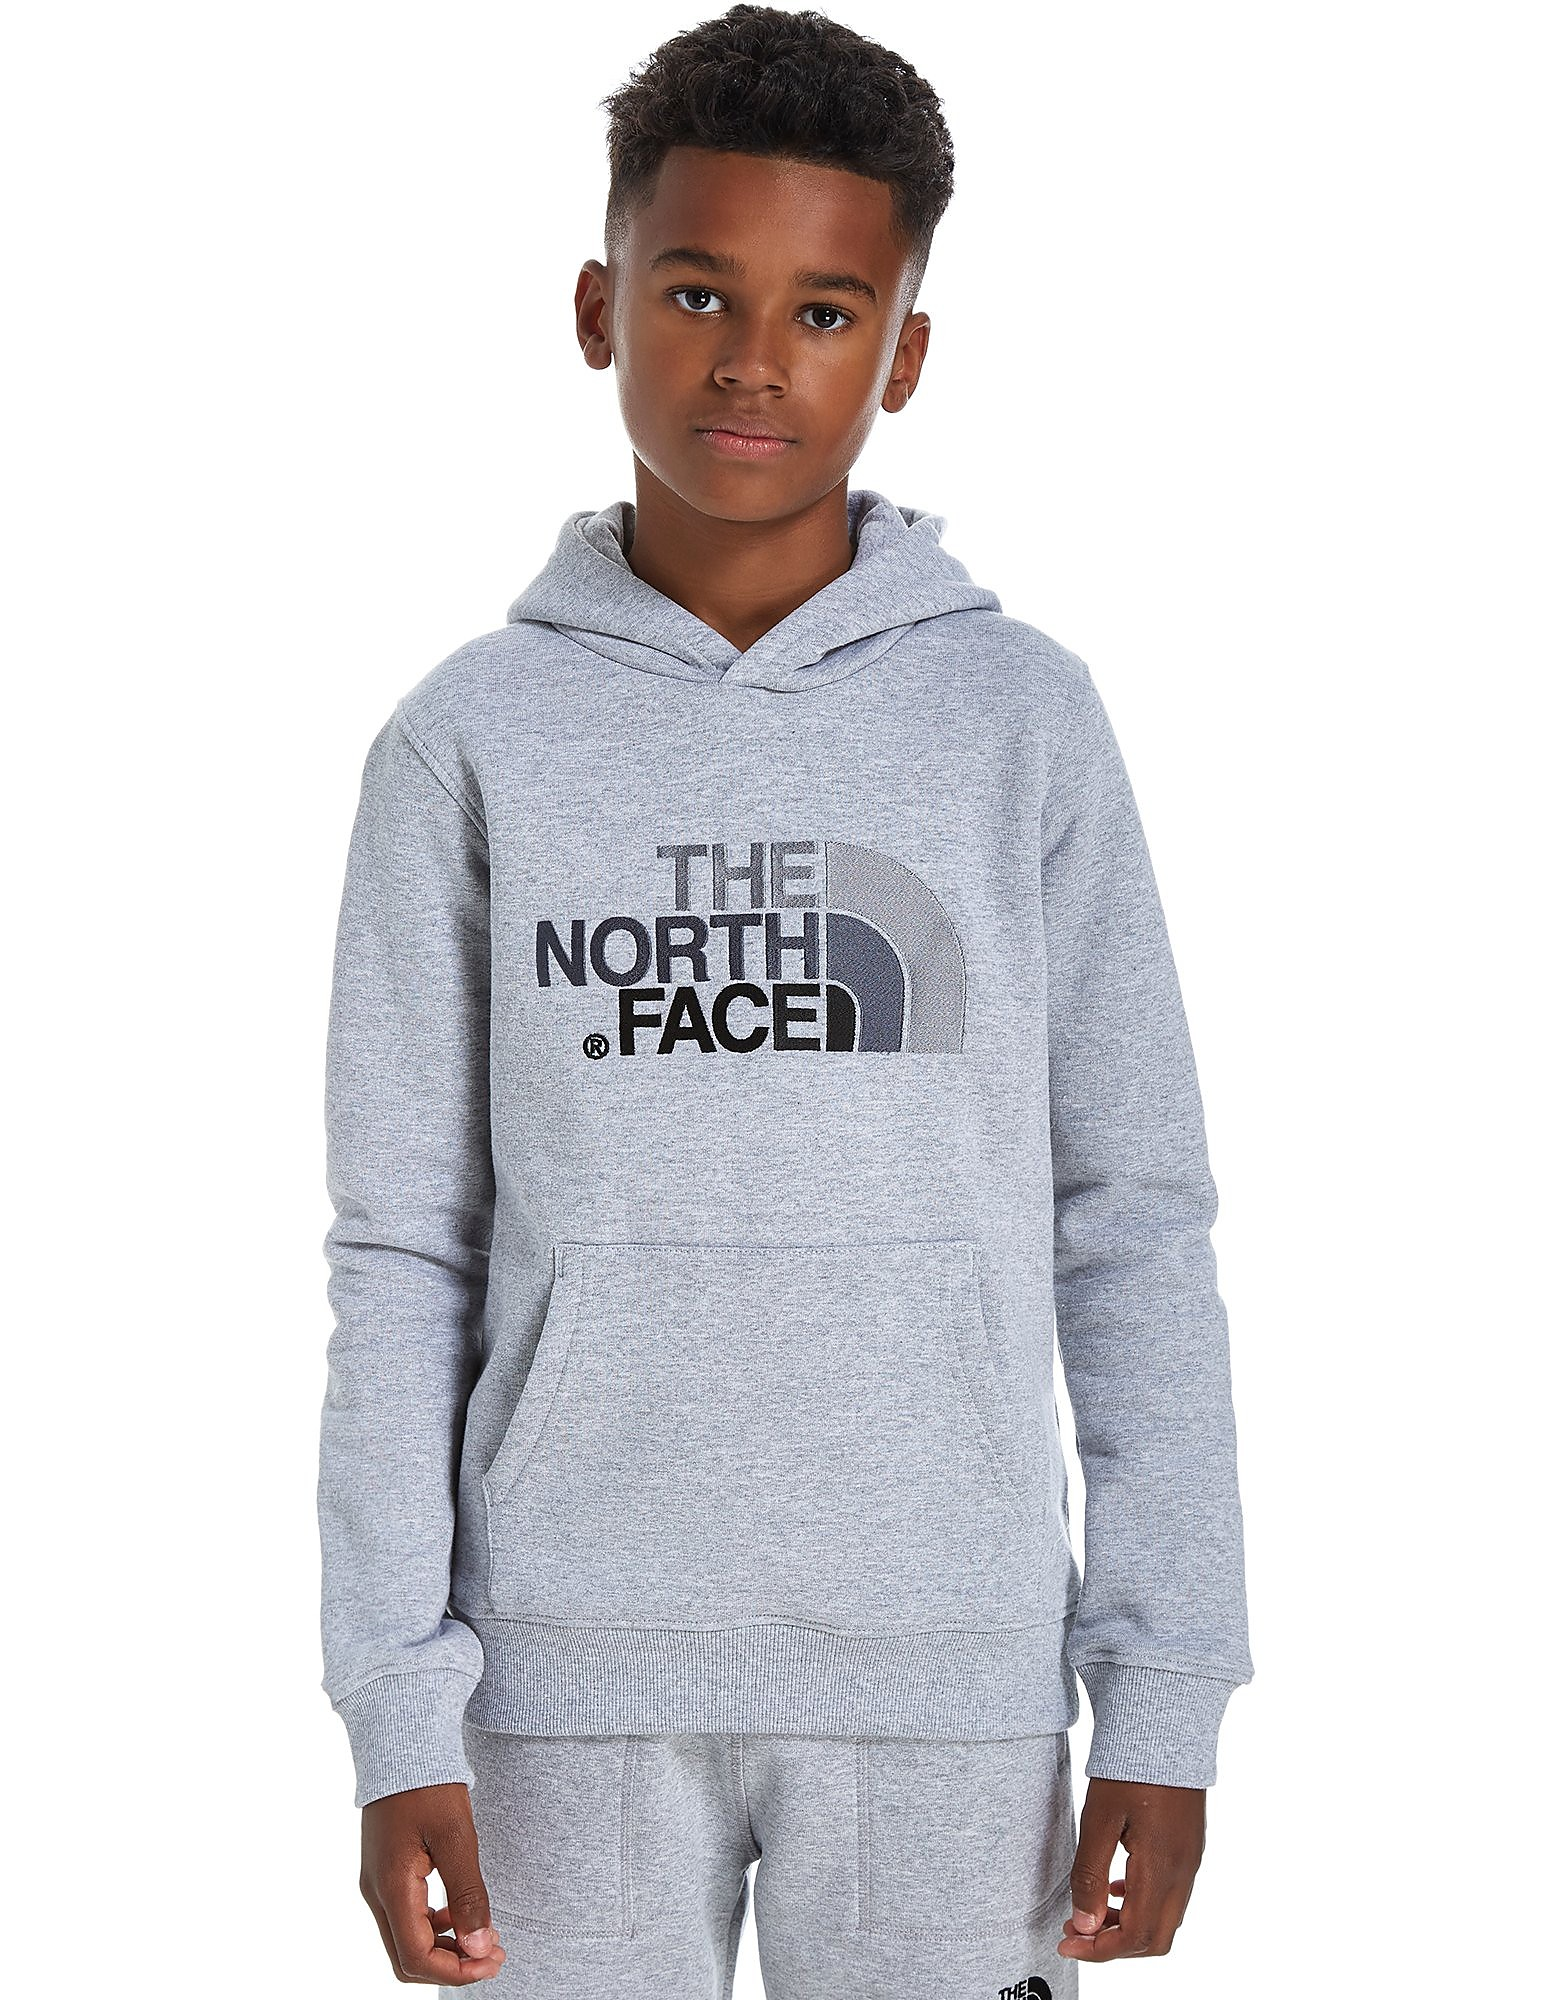 The North Face Felpa con cappuccio Drew Peak Junior